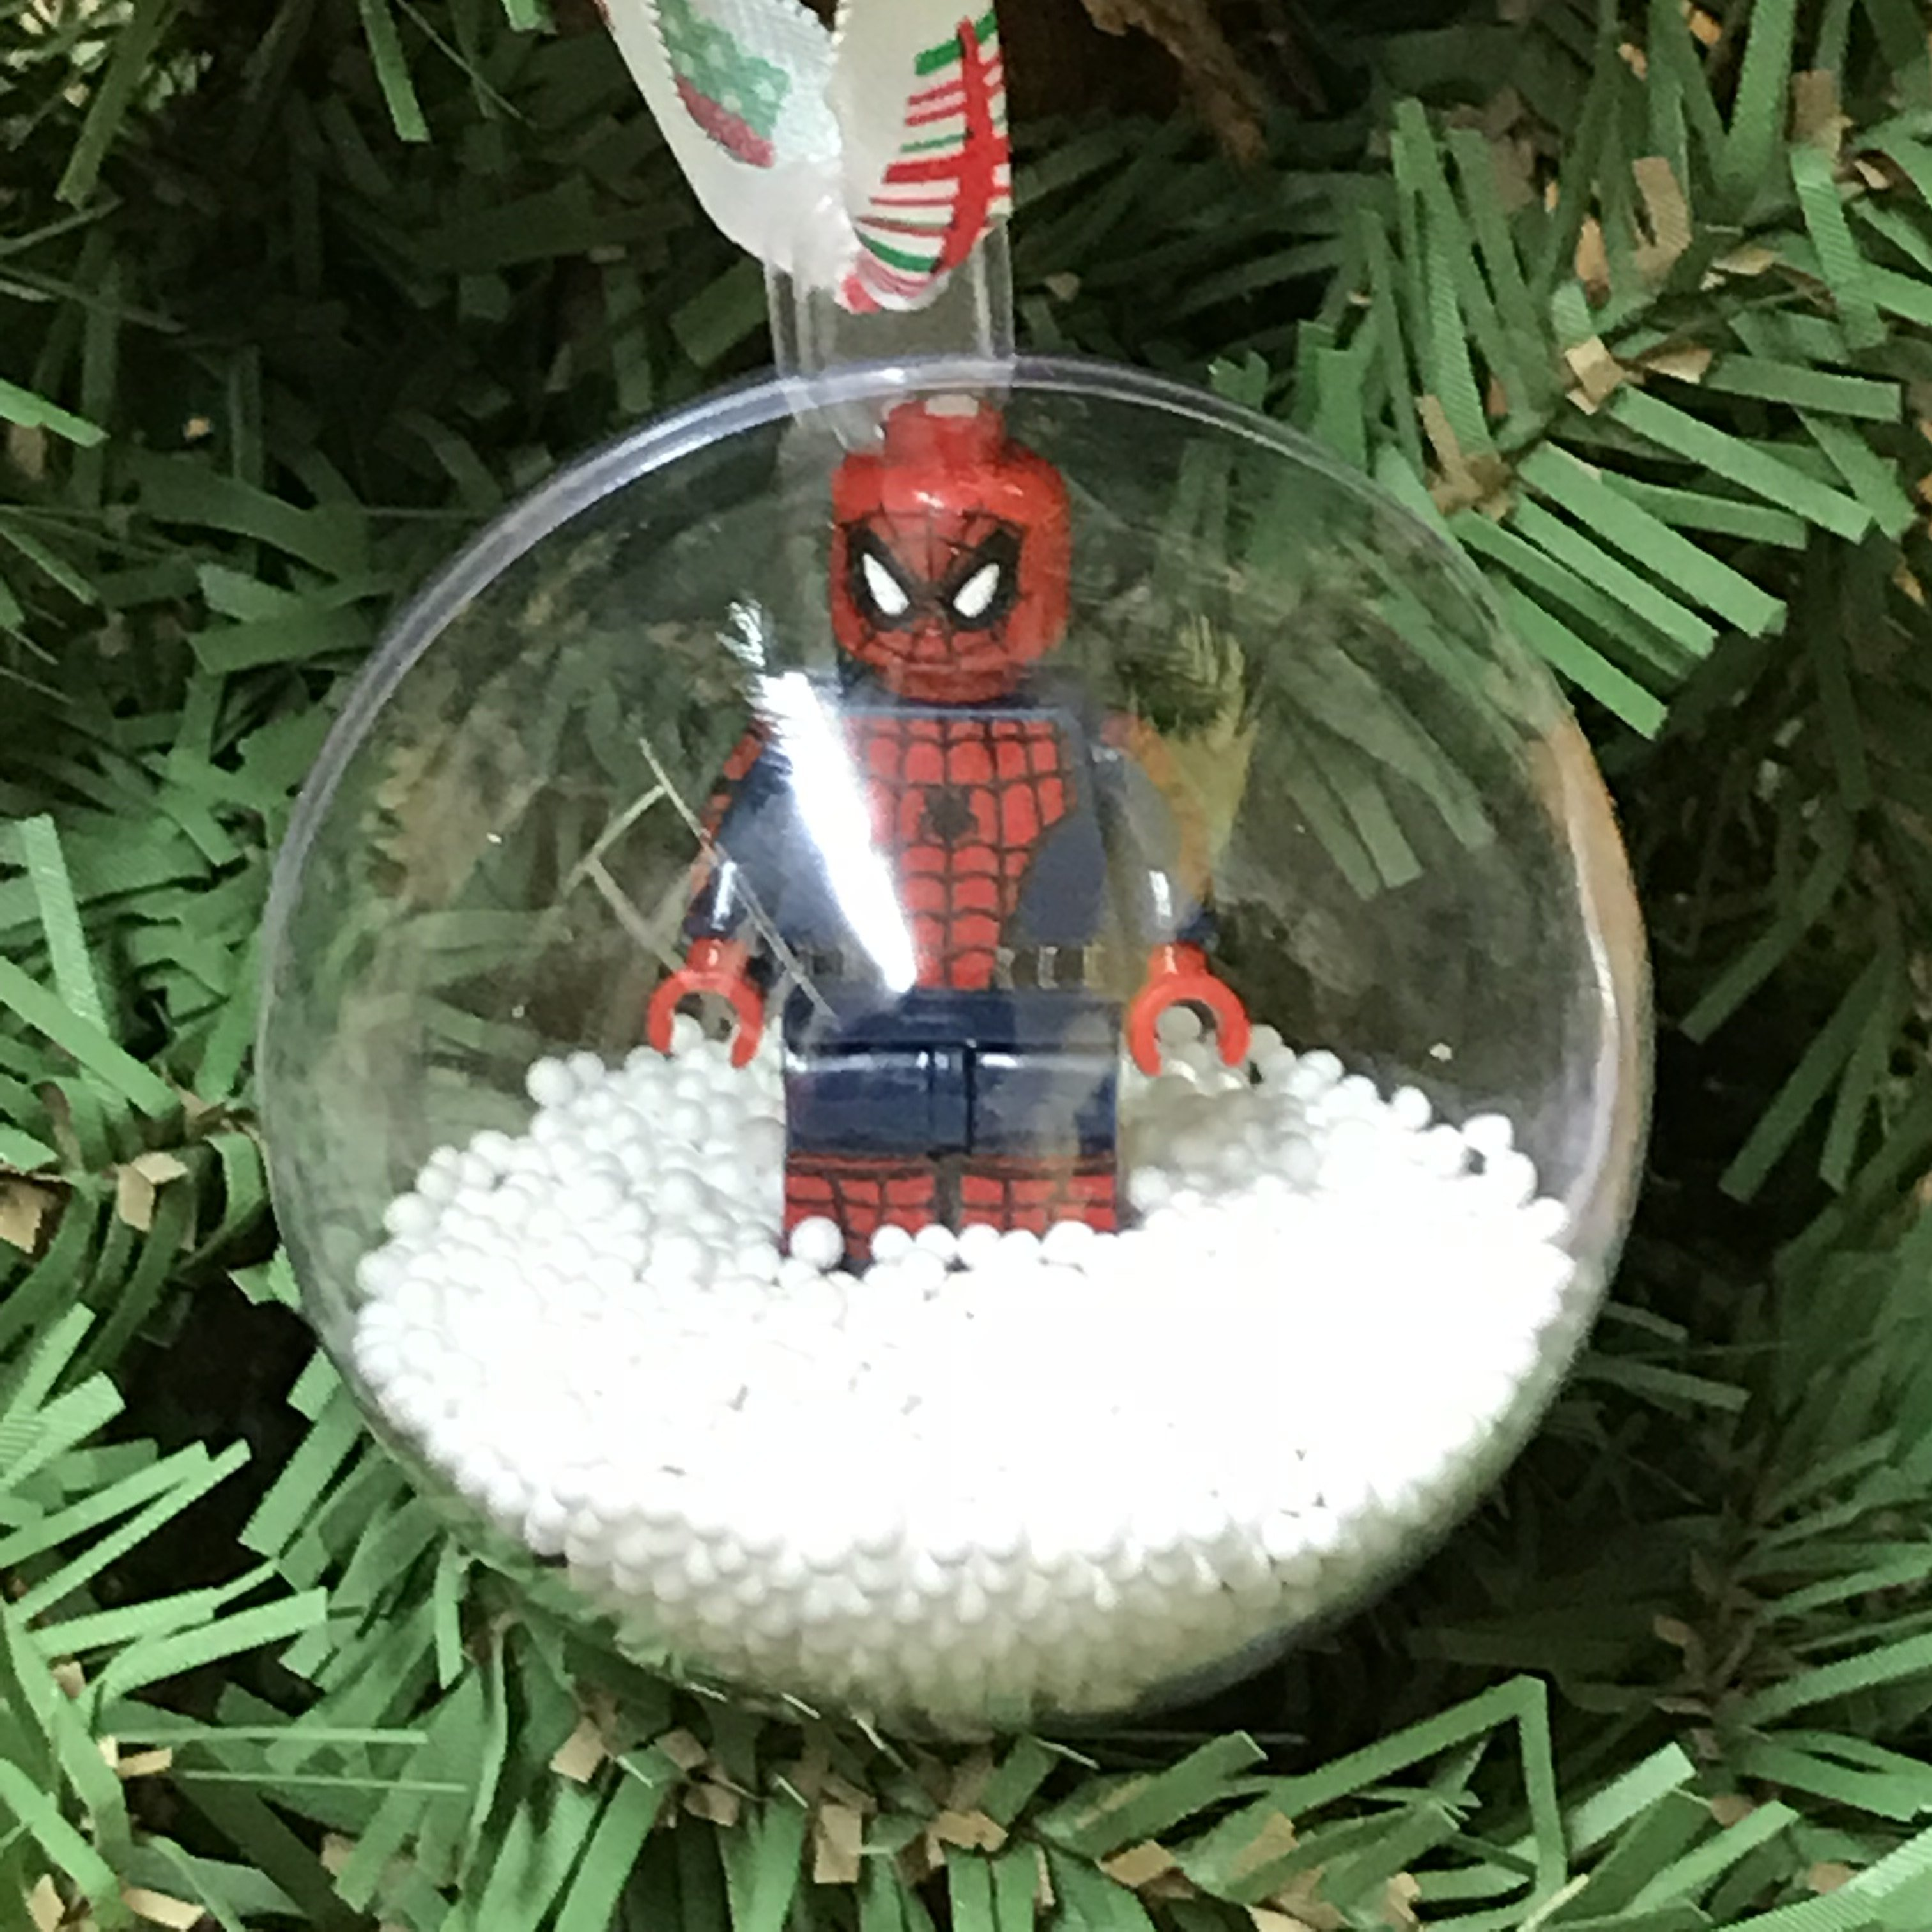 Holiday tree ornament marvel dc comic spiderman lego figurine products